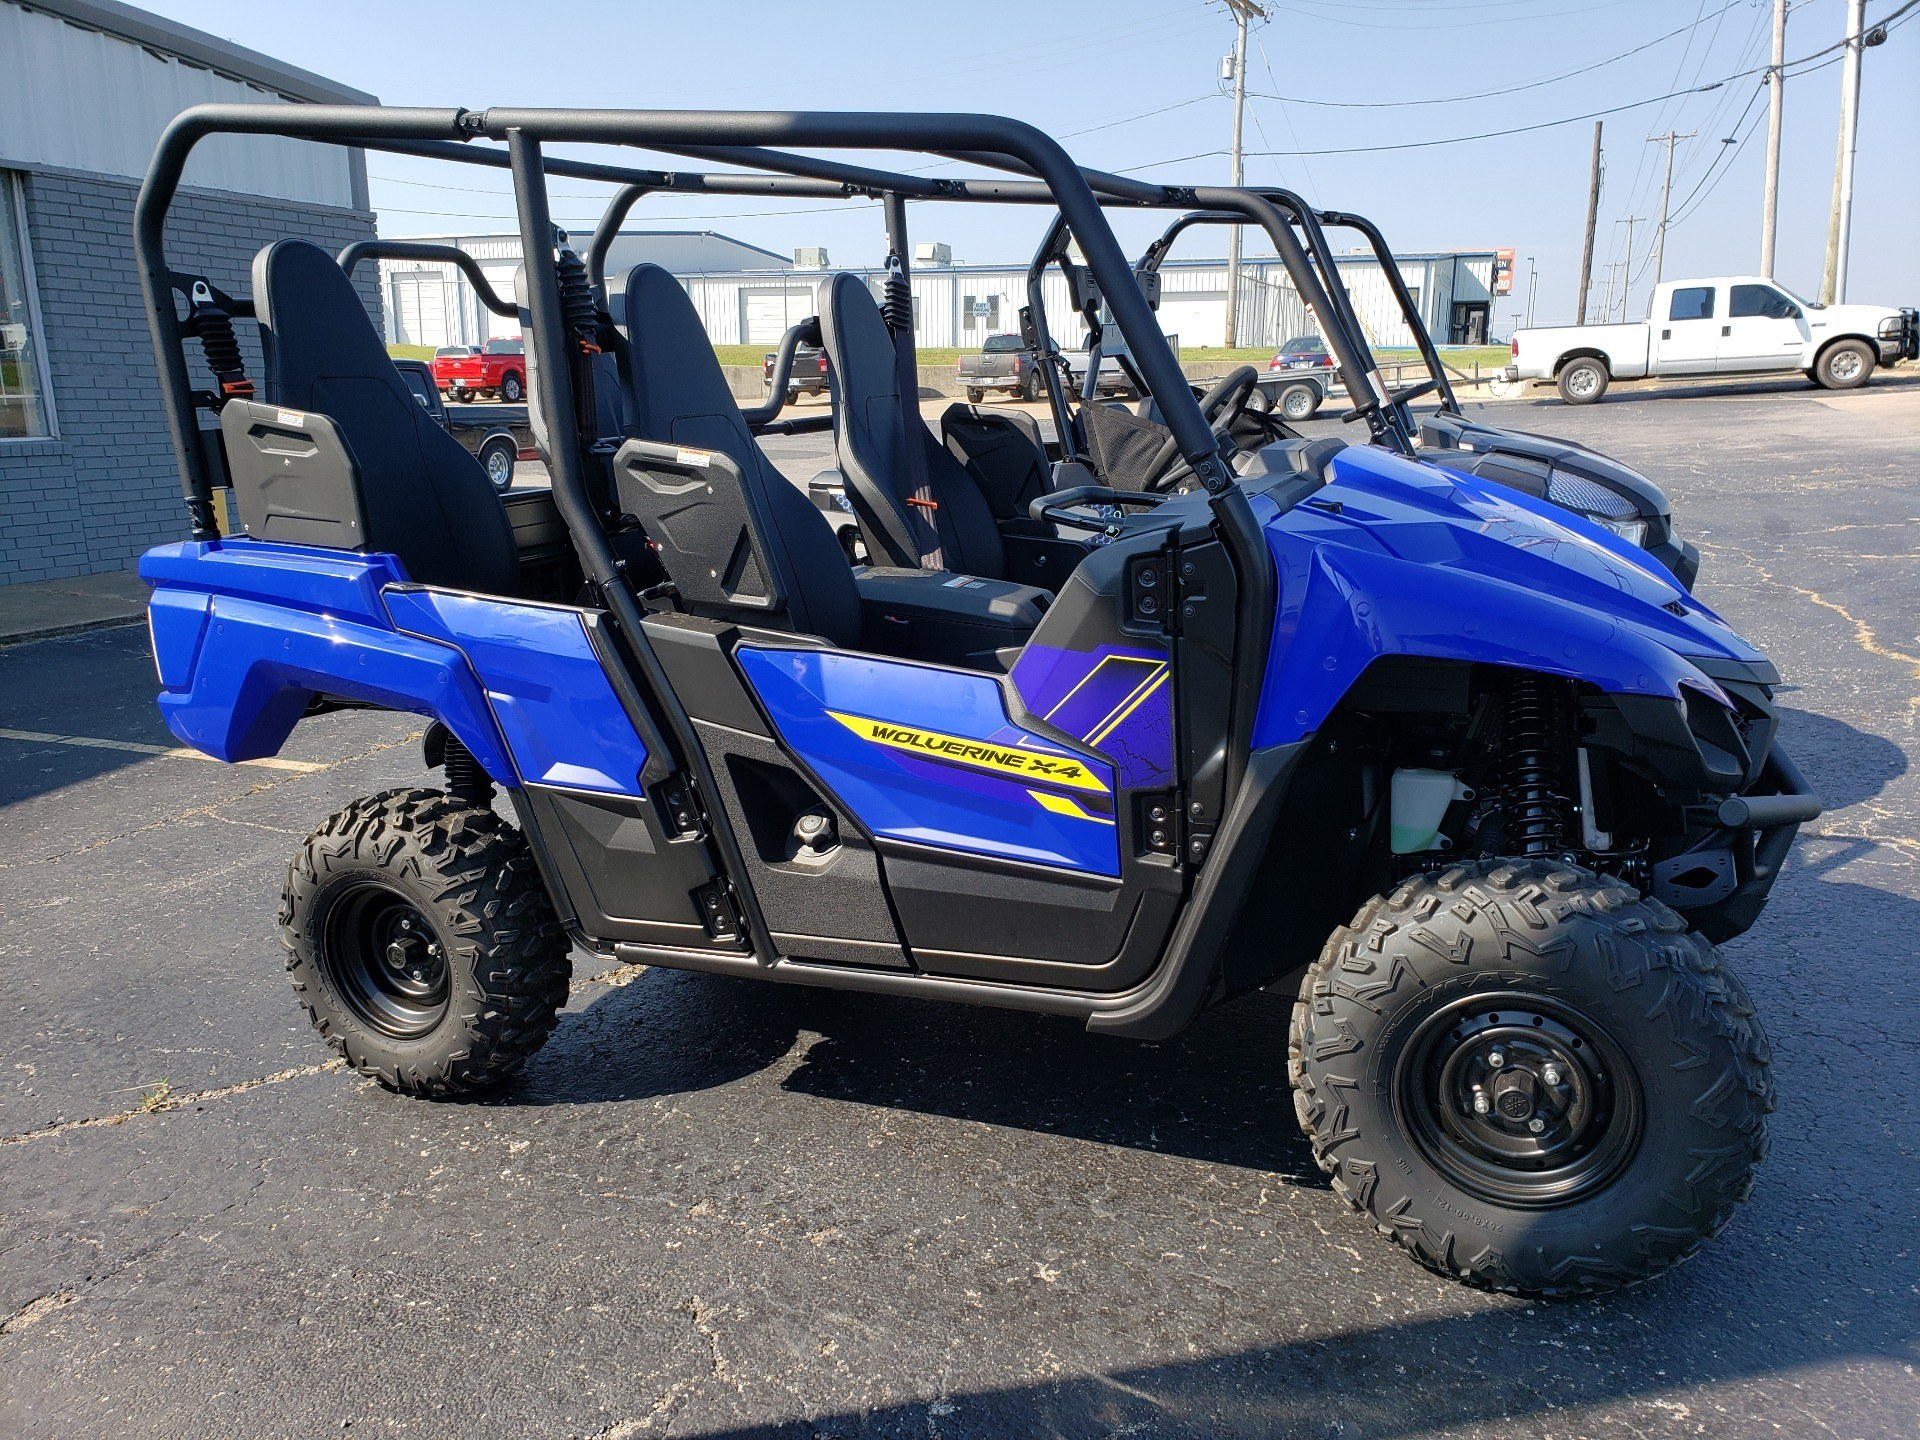 2020 Yamaha Wolverine X4 850 in Tulsa, Oklahoma - Photo 1